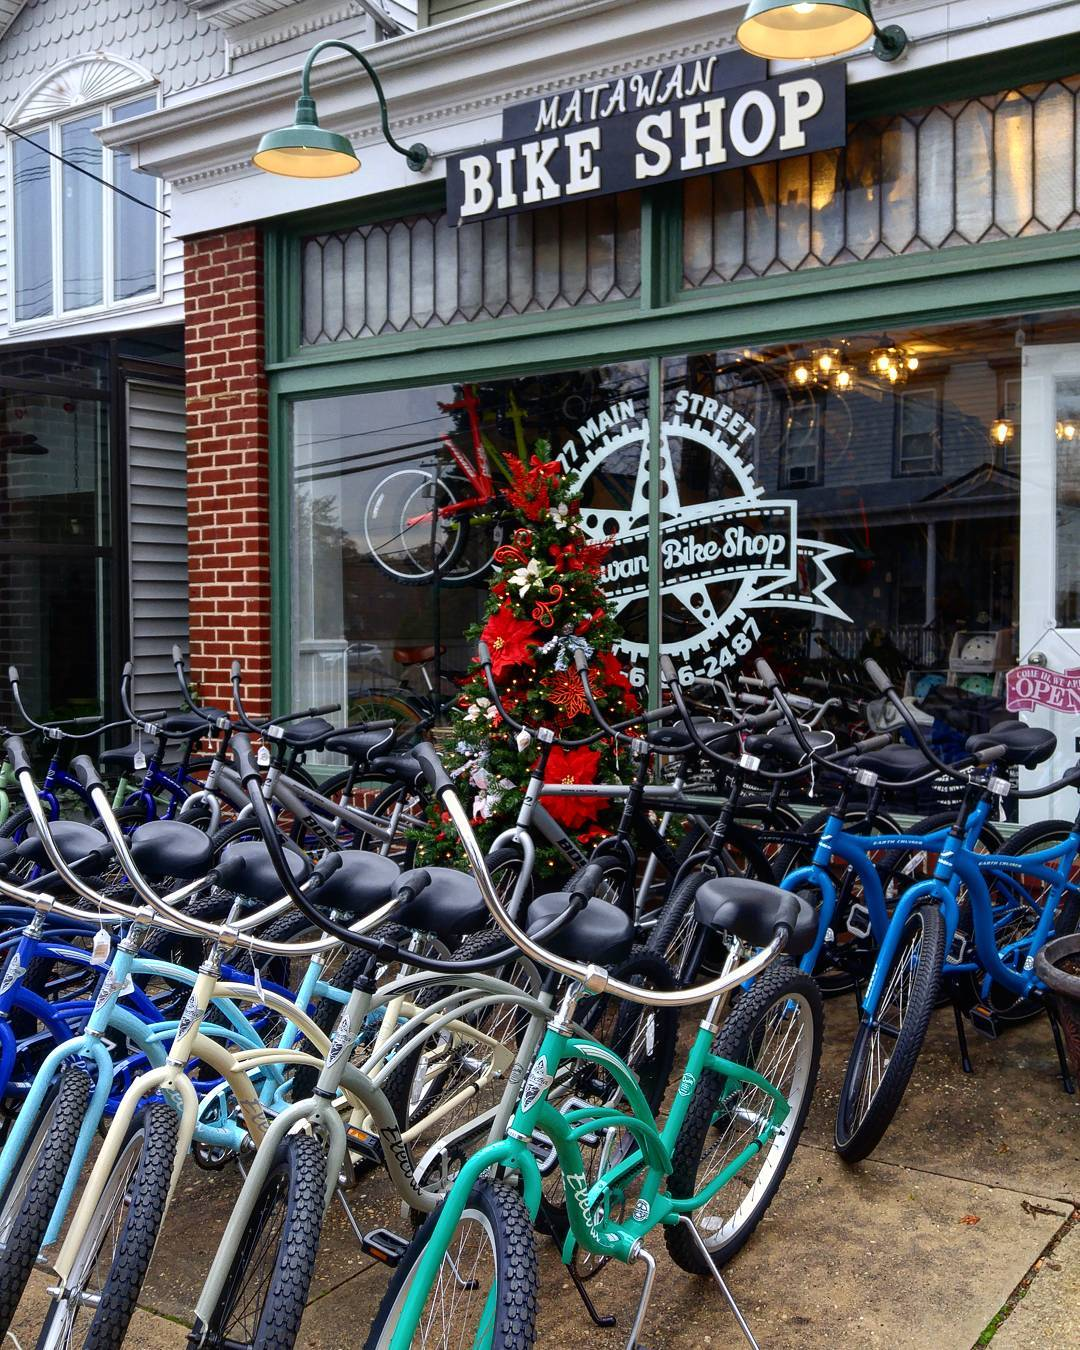 Bike Shop in New Jersey